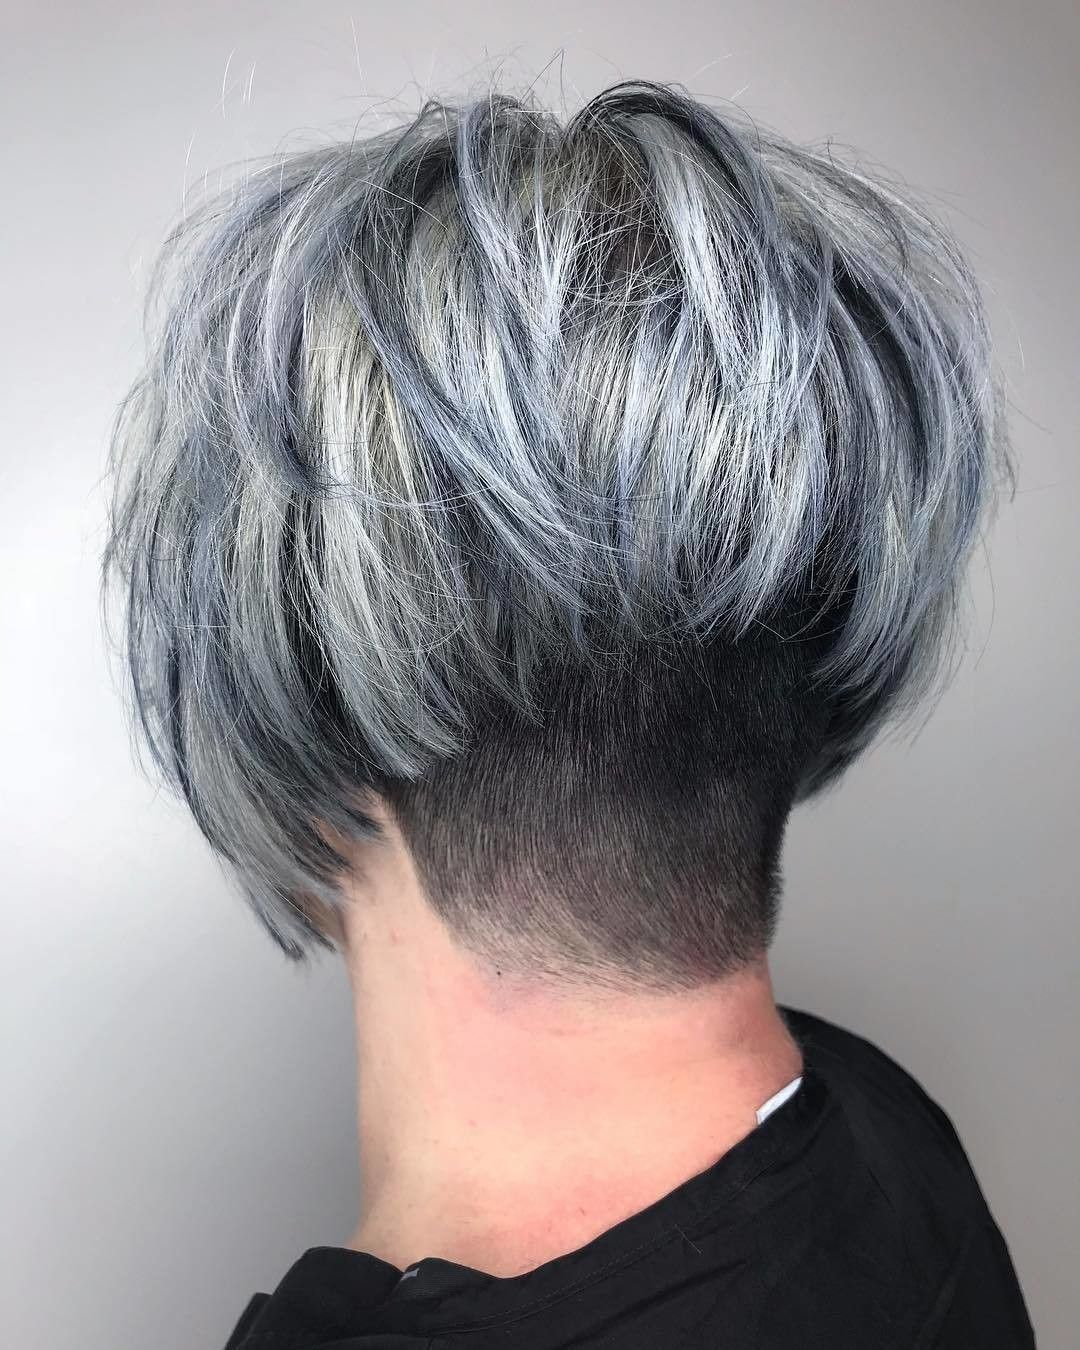 Pin On Hair Cuts For Over 50 Women